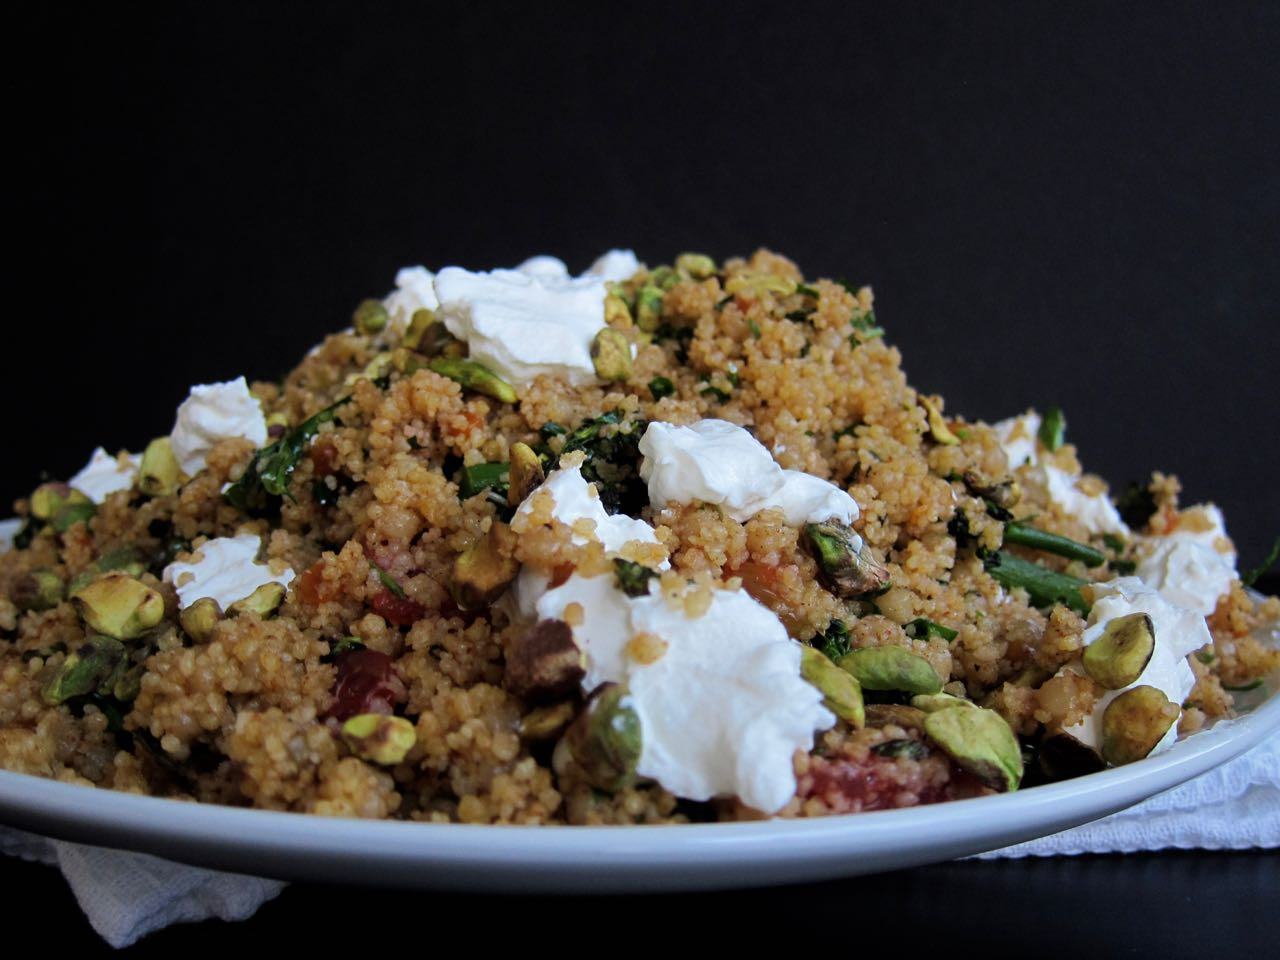 Two Cous Cous Salad